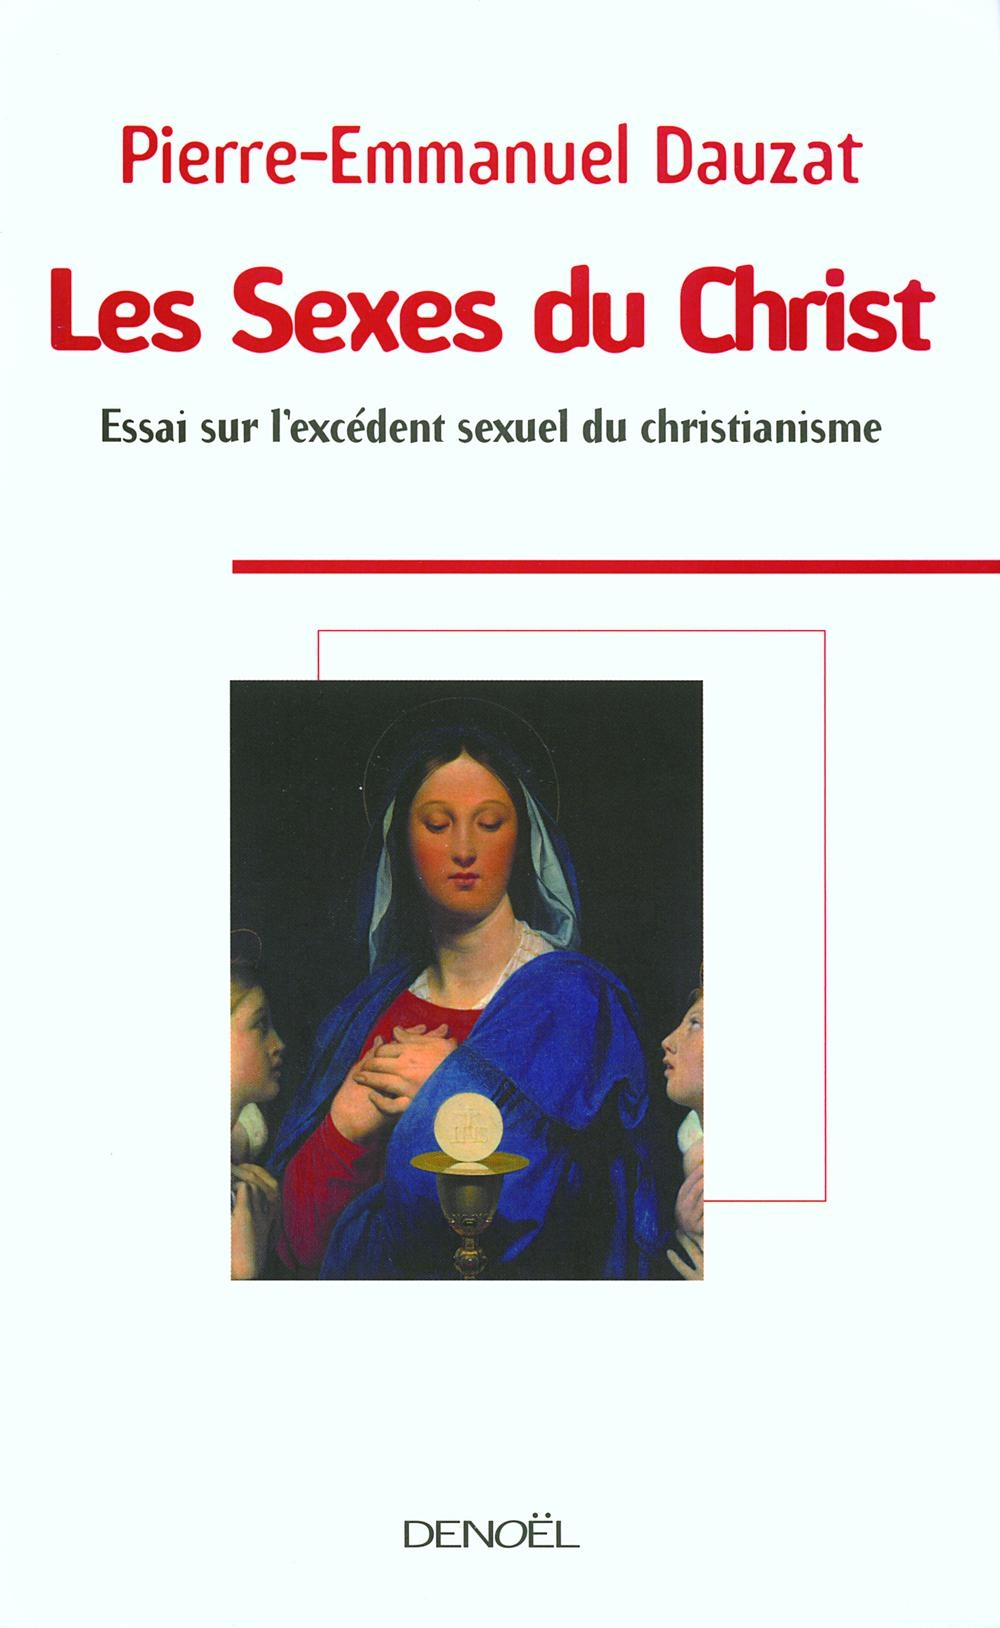 Les Sexes du Christ